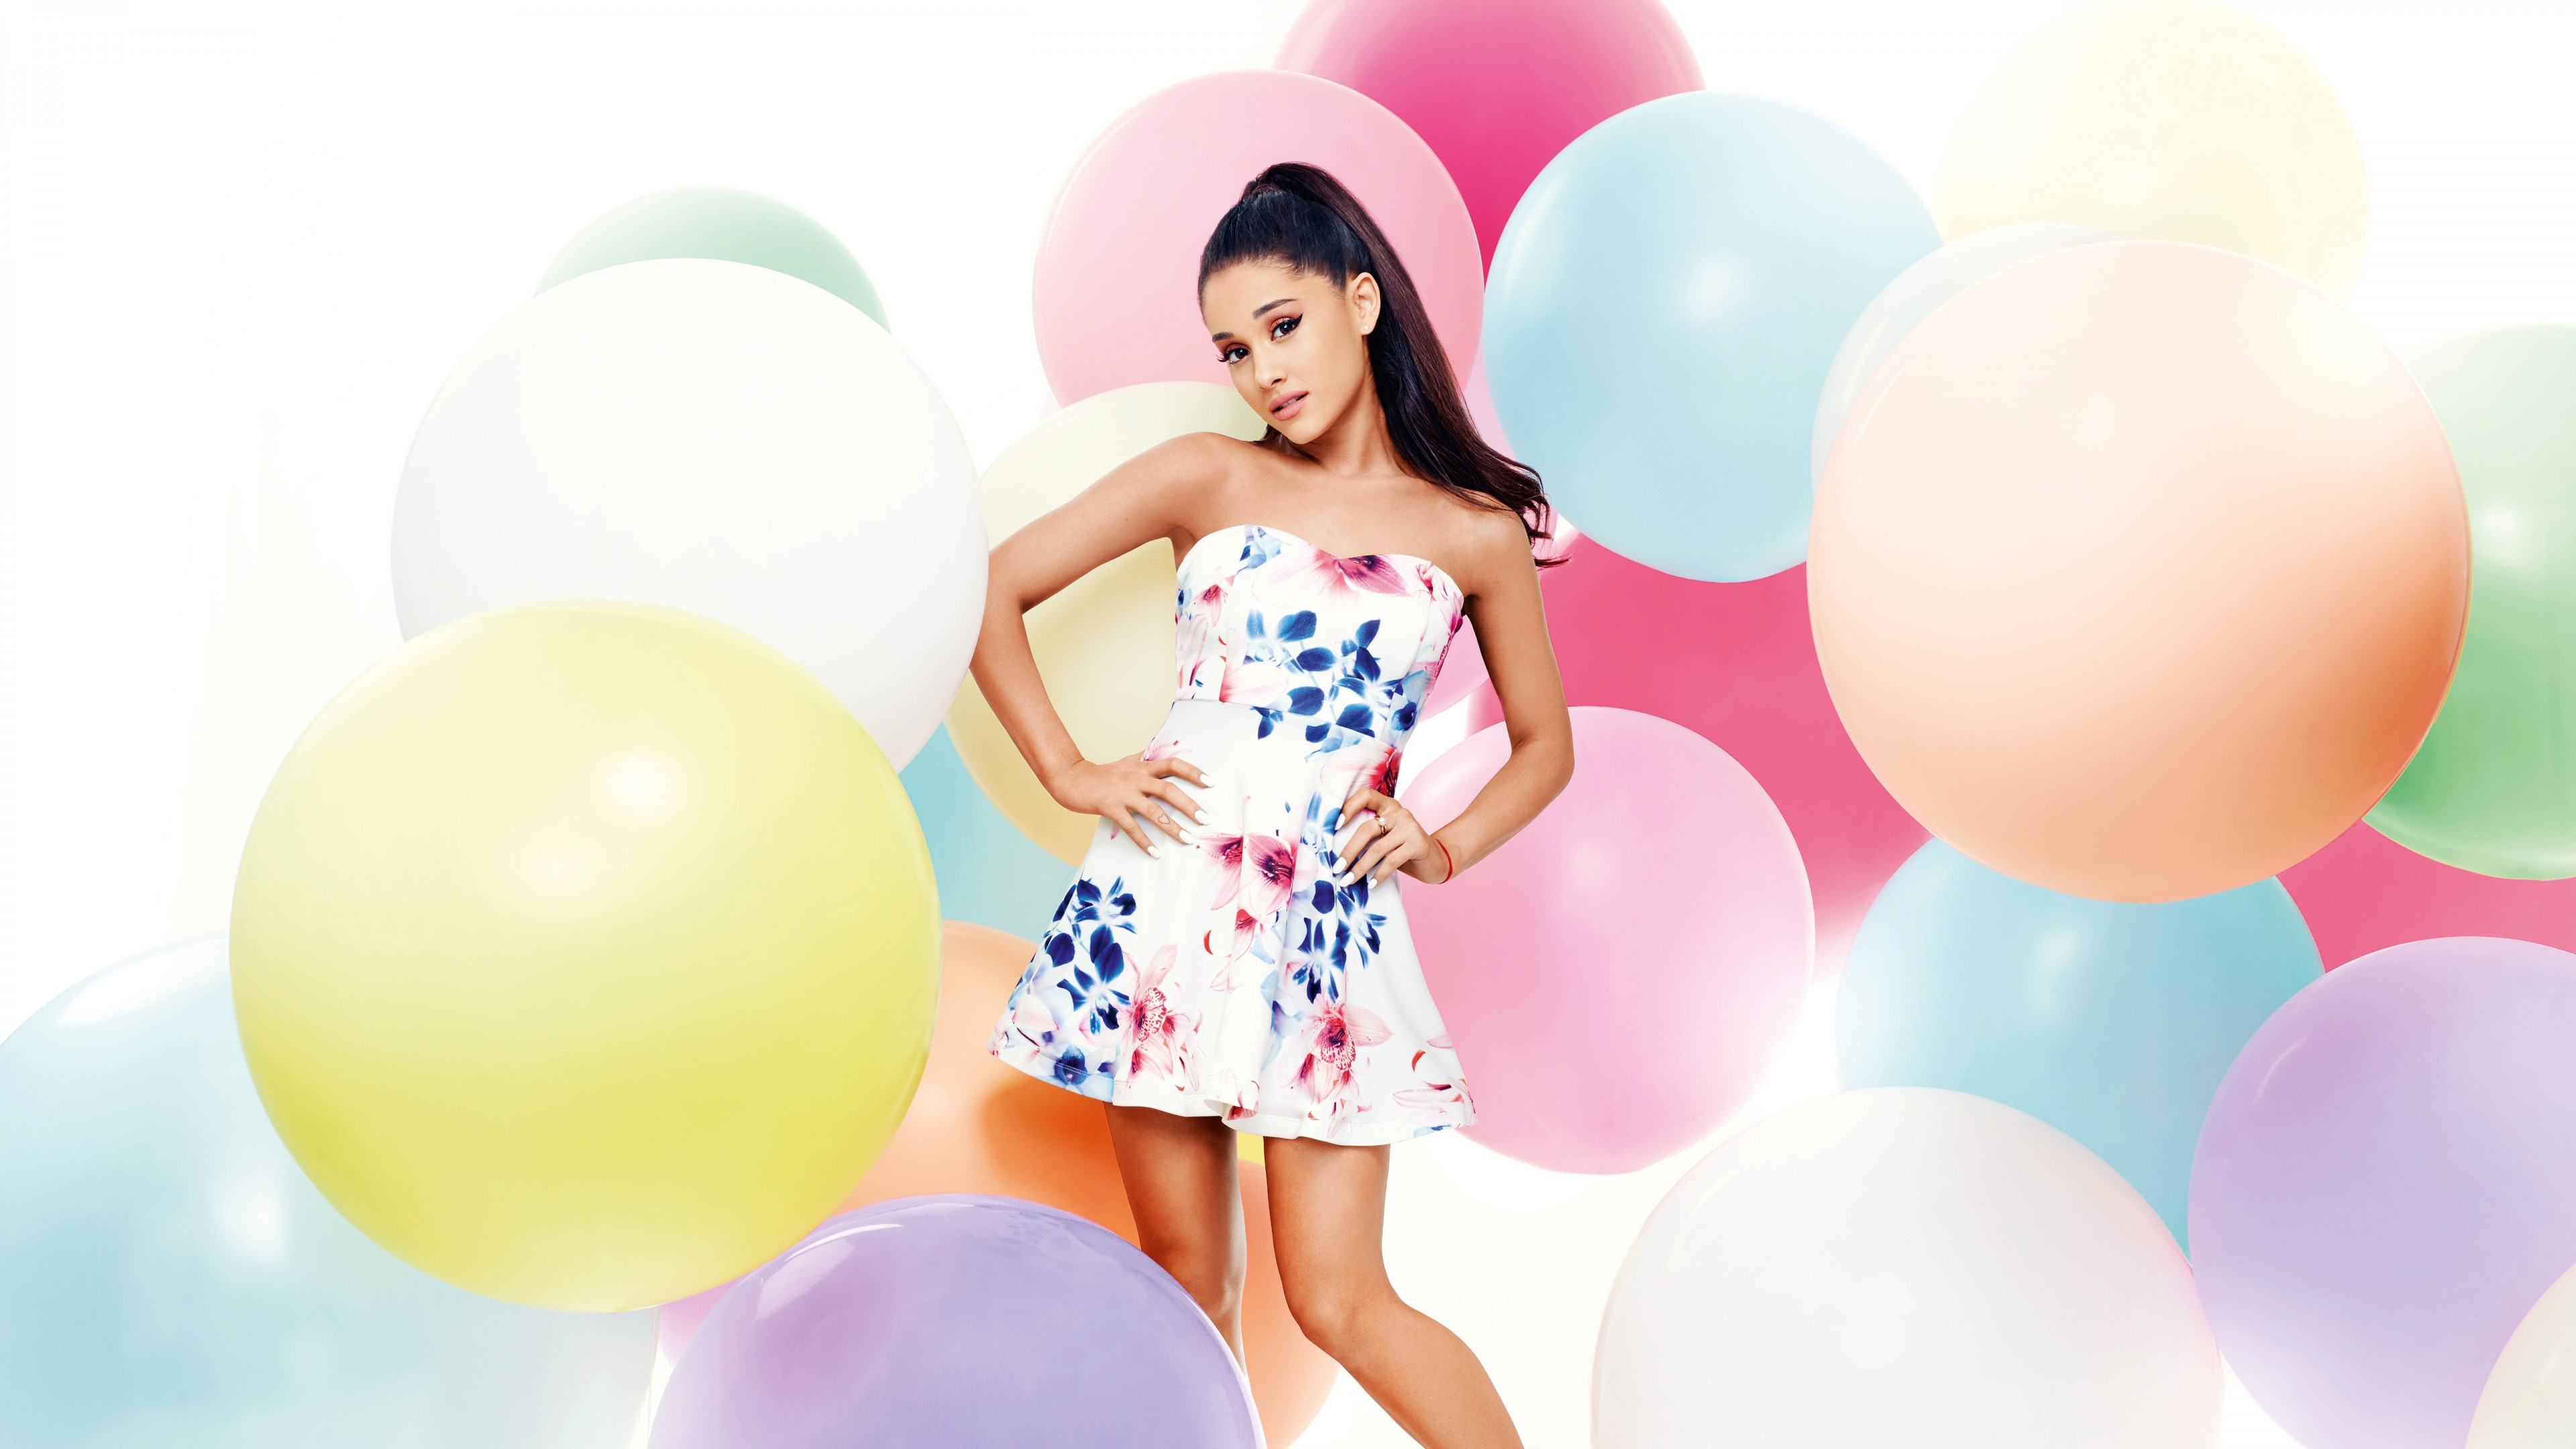 ariana grande colorful dress wide wallpaper 63380